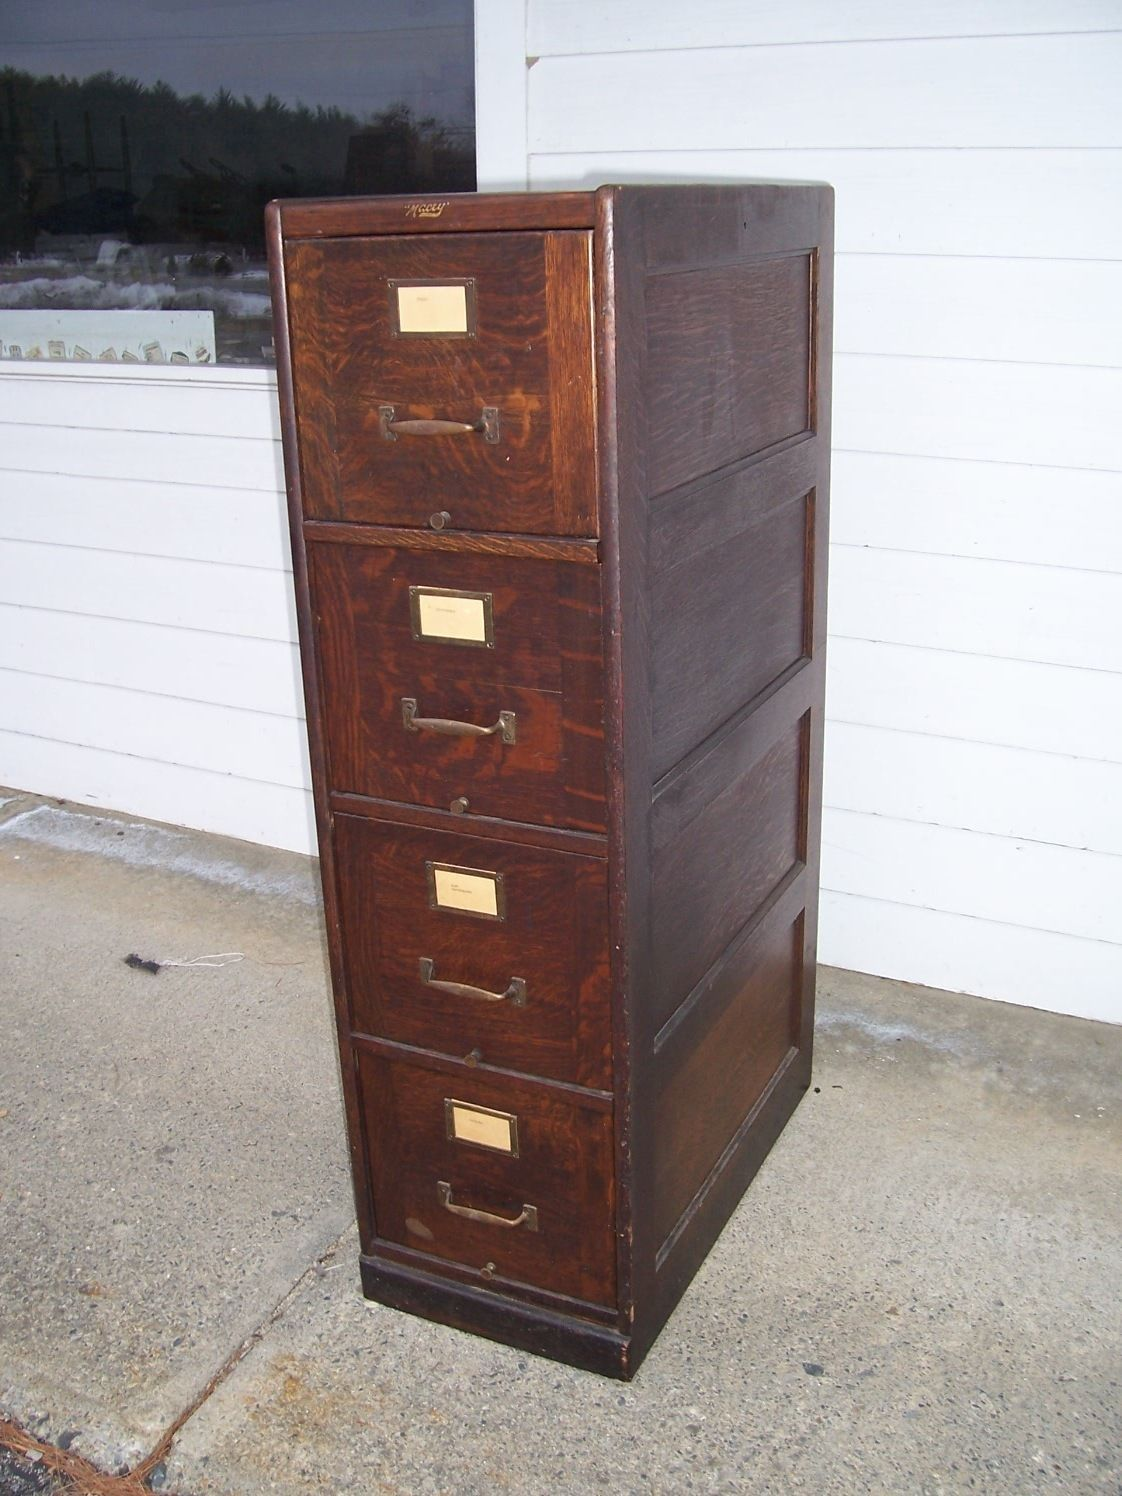 Antique Quarter Sawn Oak 4 Drawer File Cabinet Doctor's Lawyer's Office  Mission | eBay - Antique Quarter Sawn Oak 4 Drawer File Cabinet Doctor's Lawyer's